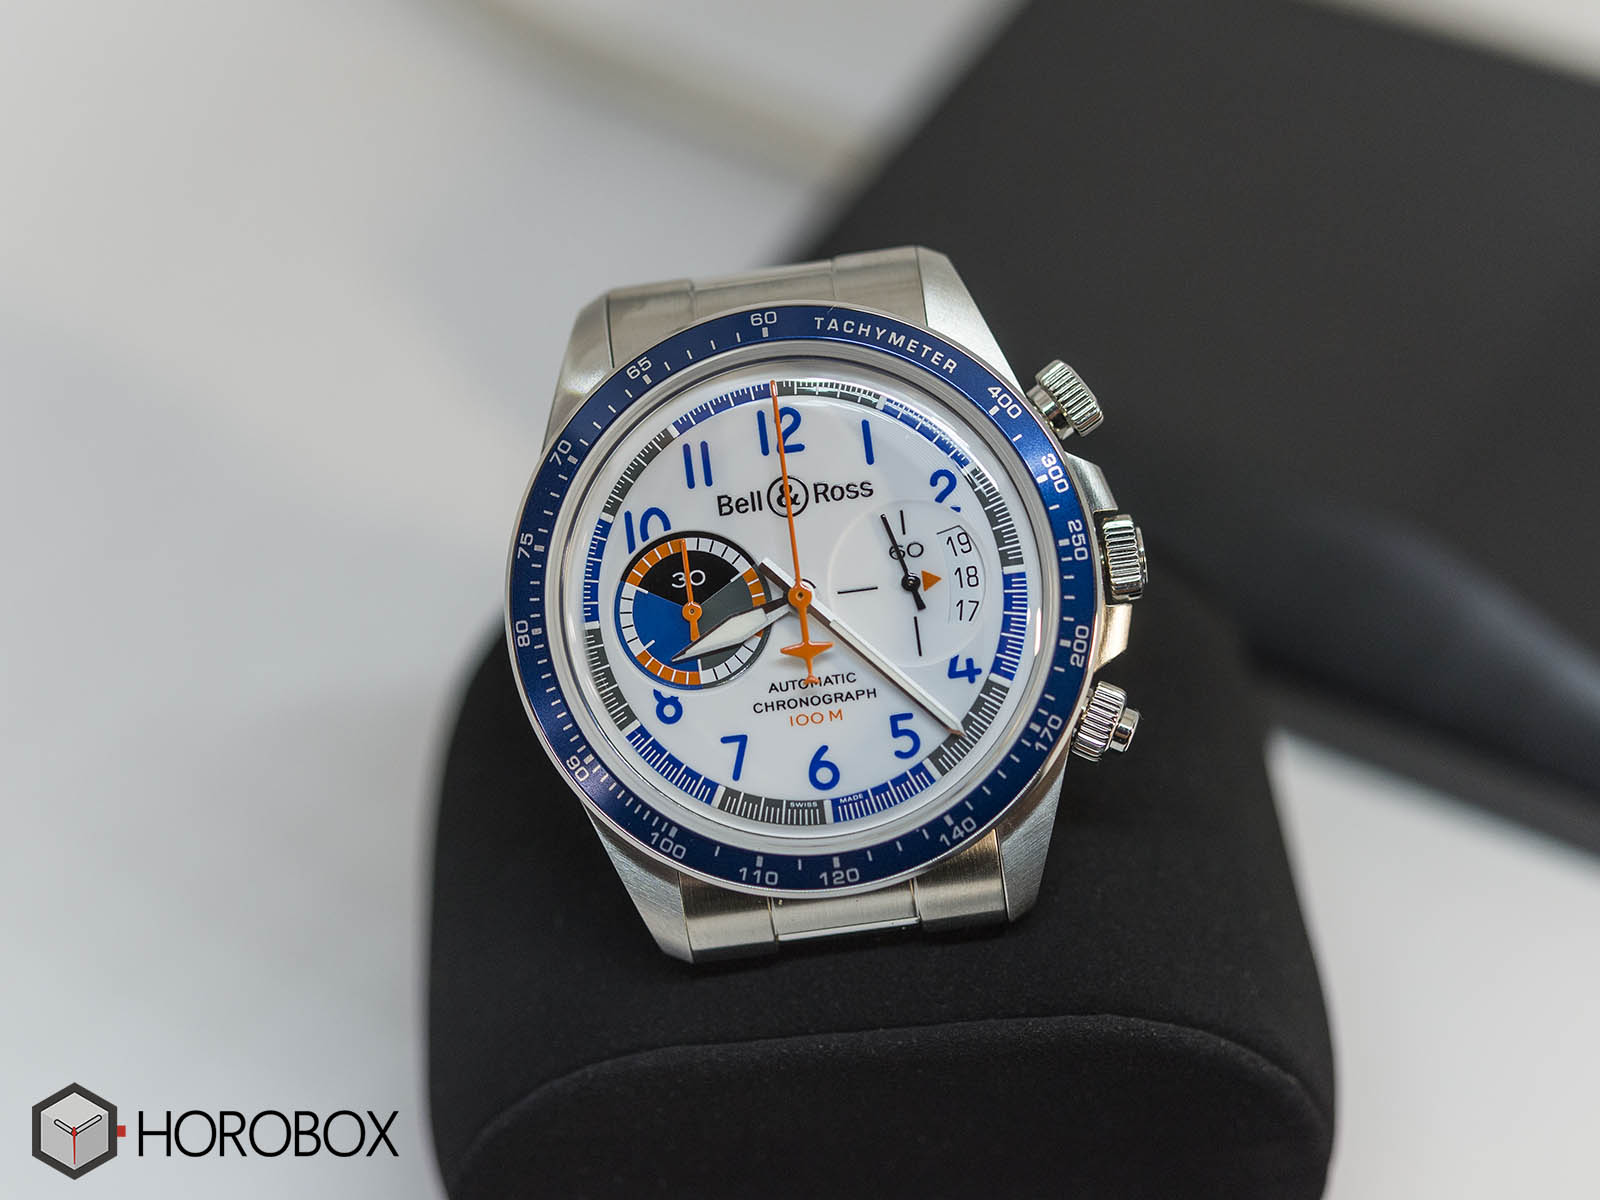 brv294-bb-st-sst-bell-ross-racing-bird-brv2-94-3.jpg